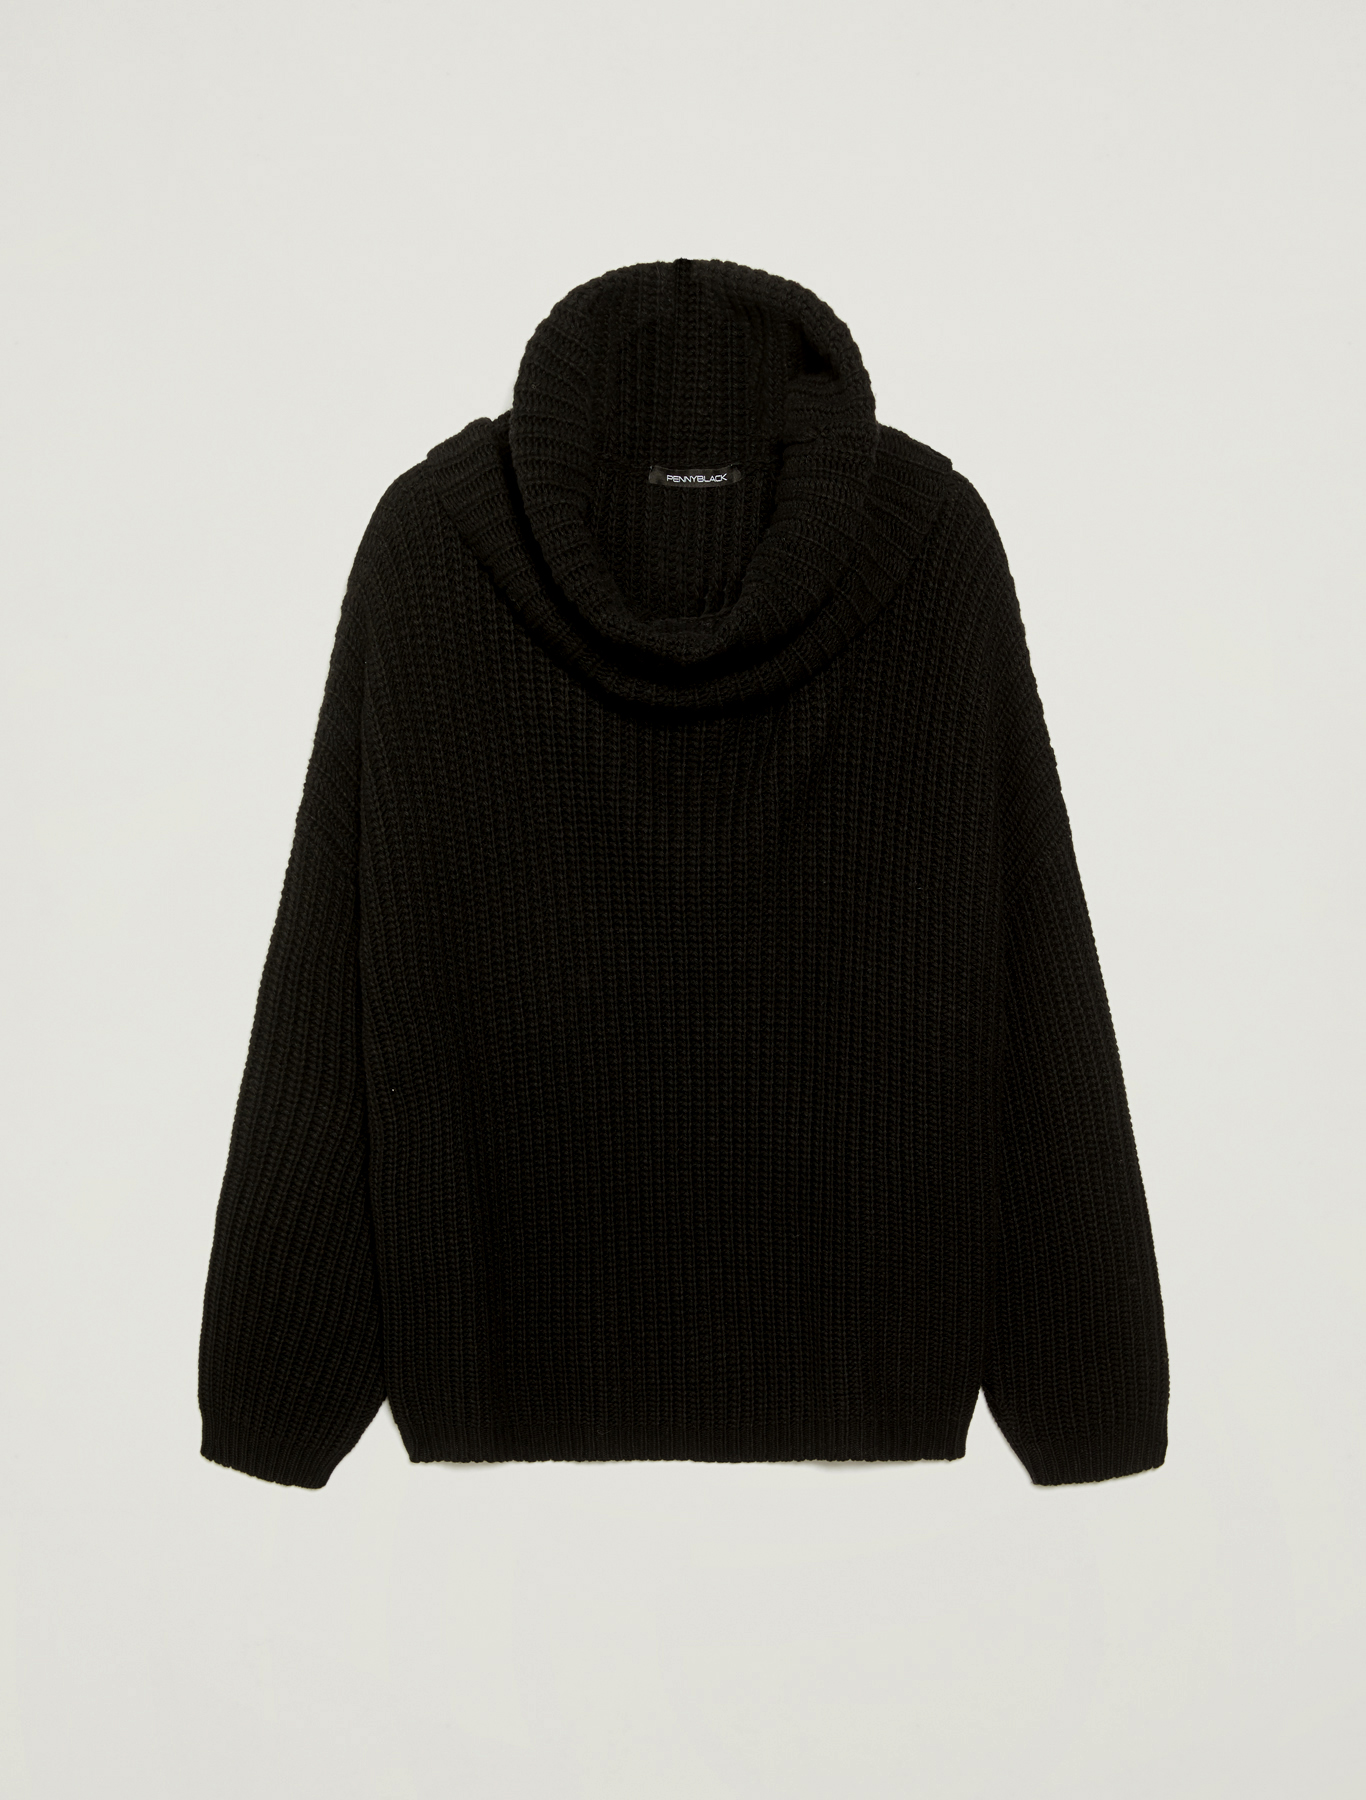 Oversize jumper with maxi-neck - black - pennyblack